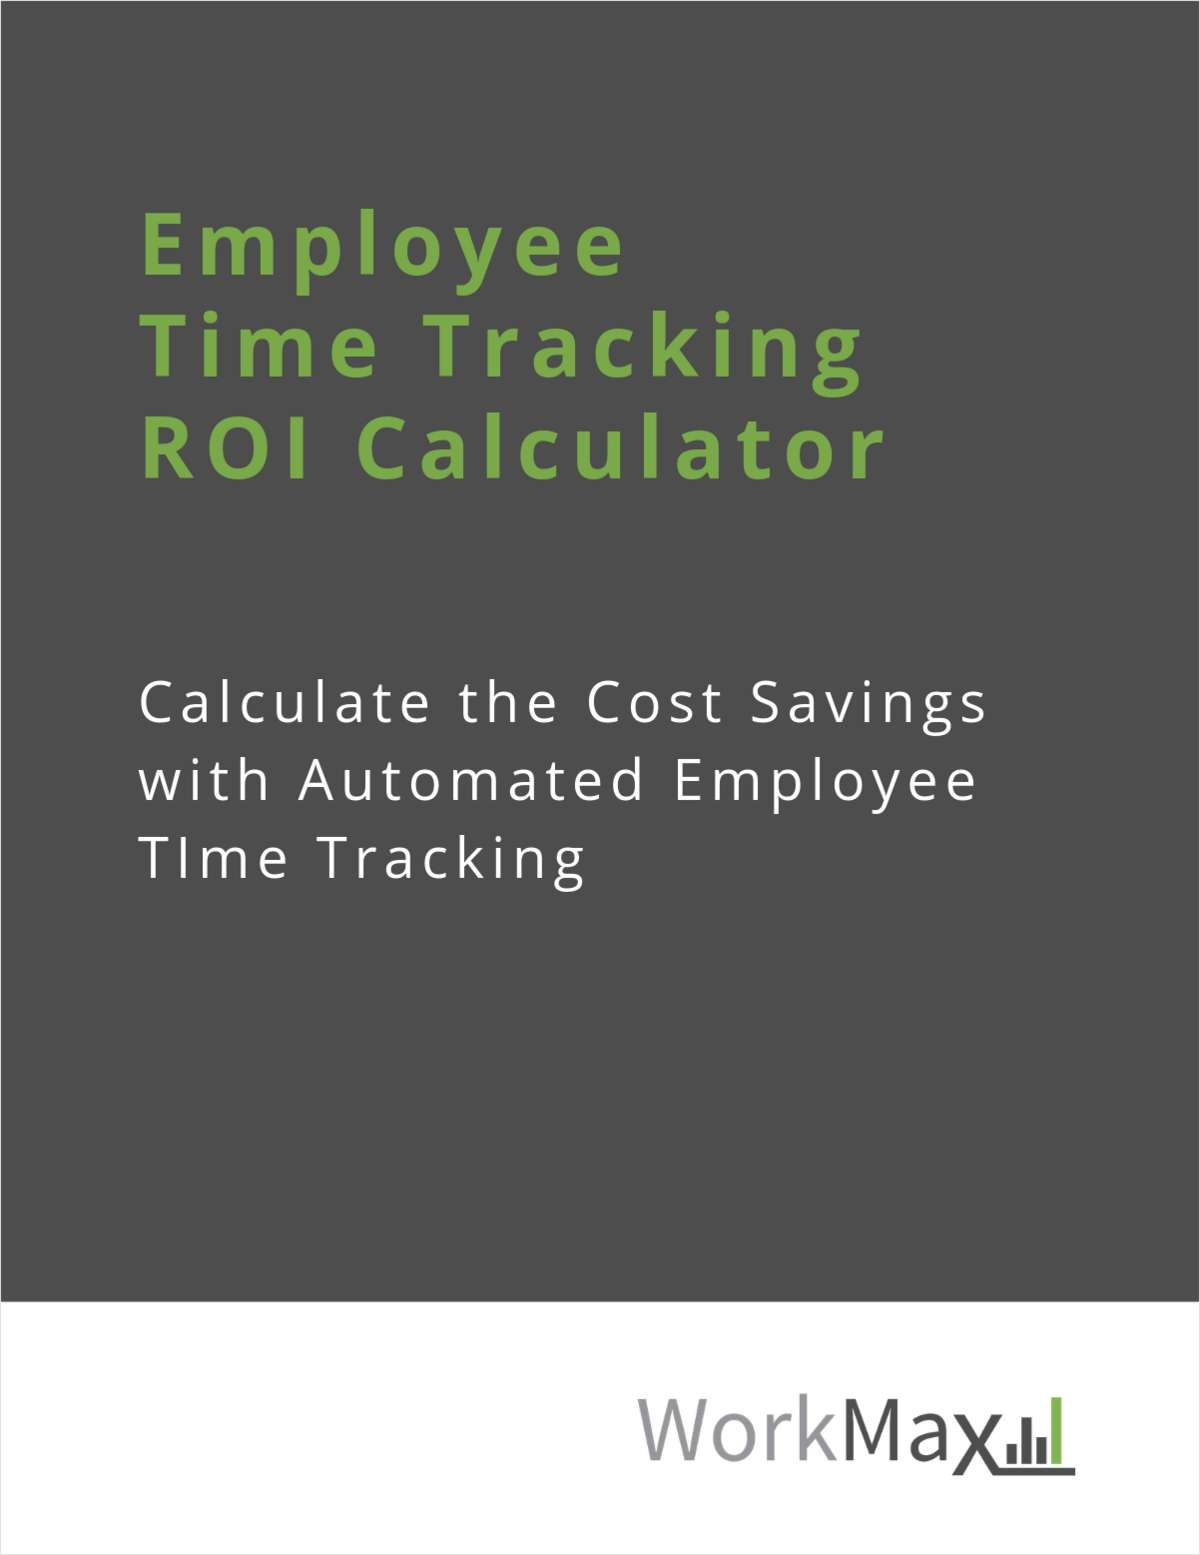 Employee Time Tracking ROI Calculator for Construction Industry